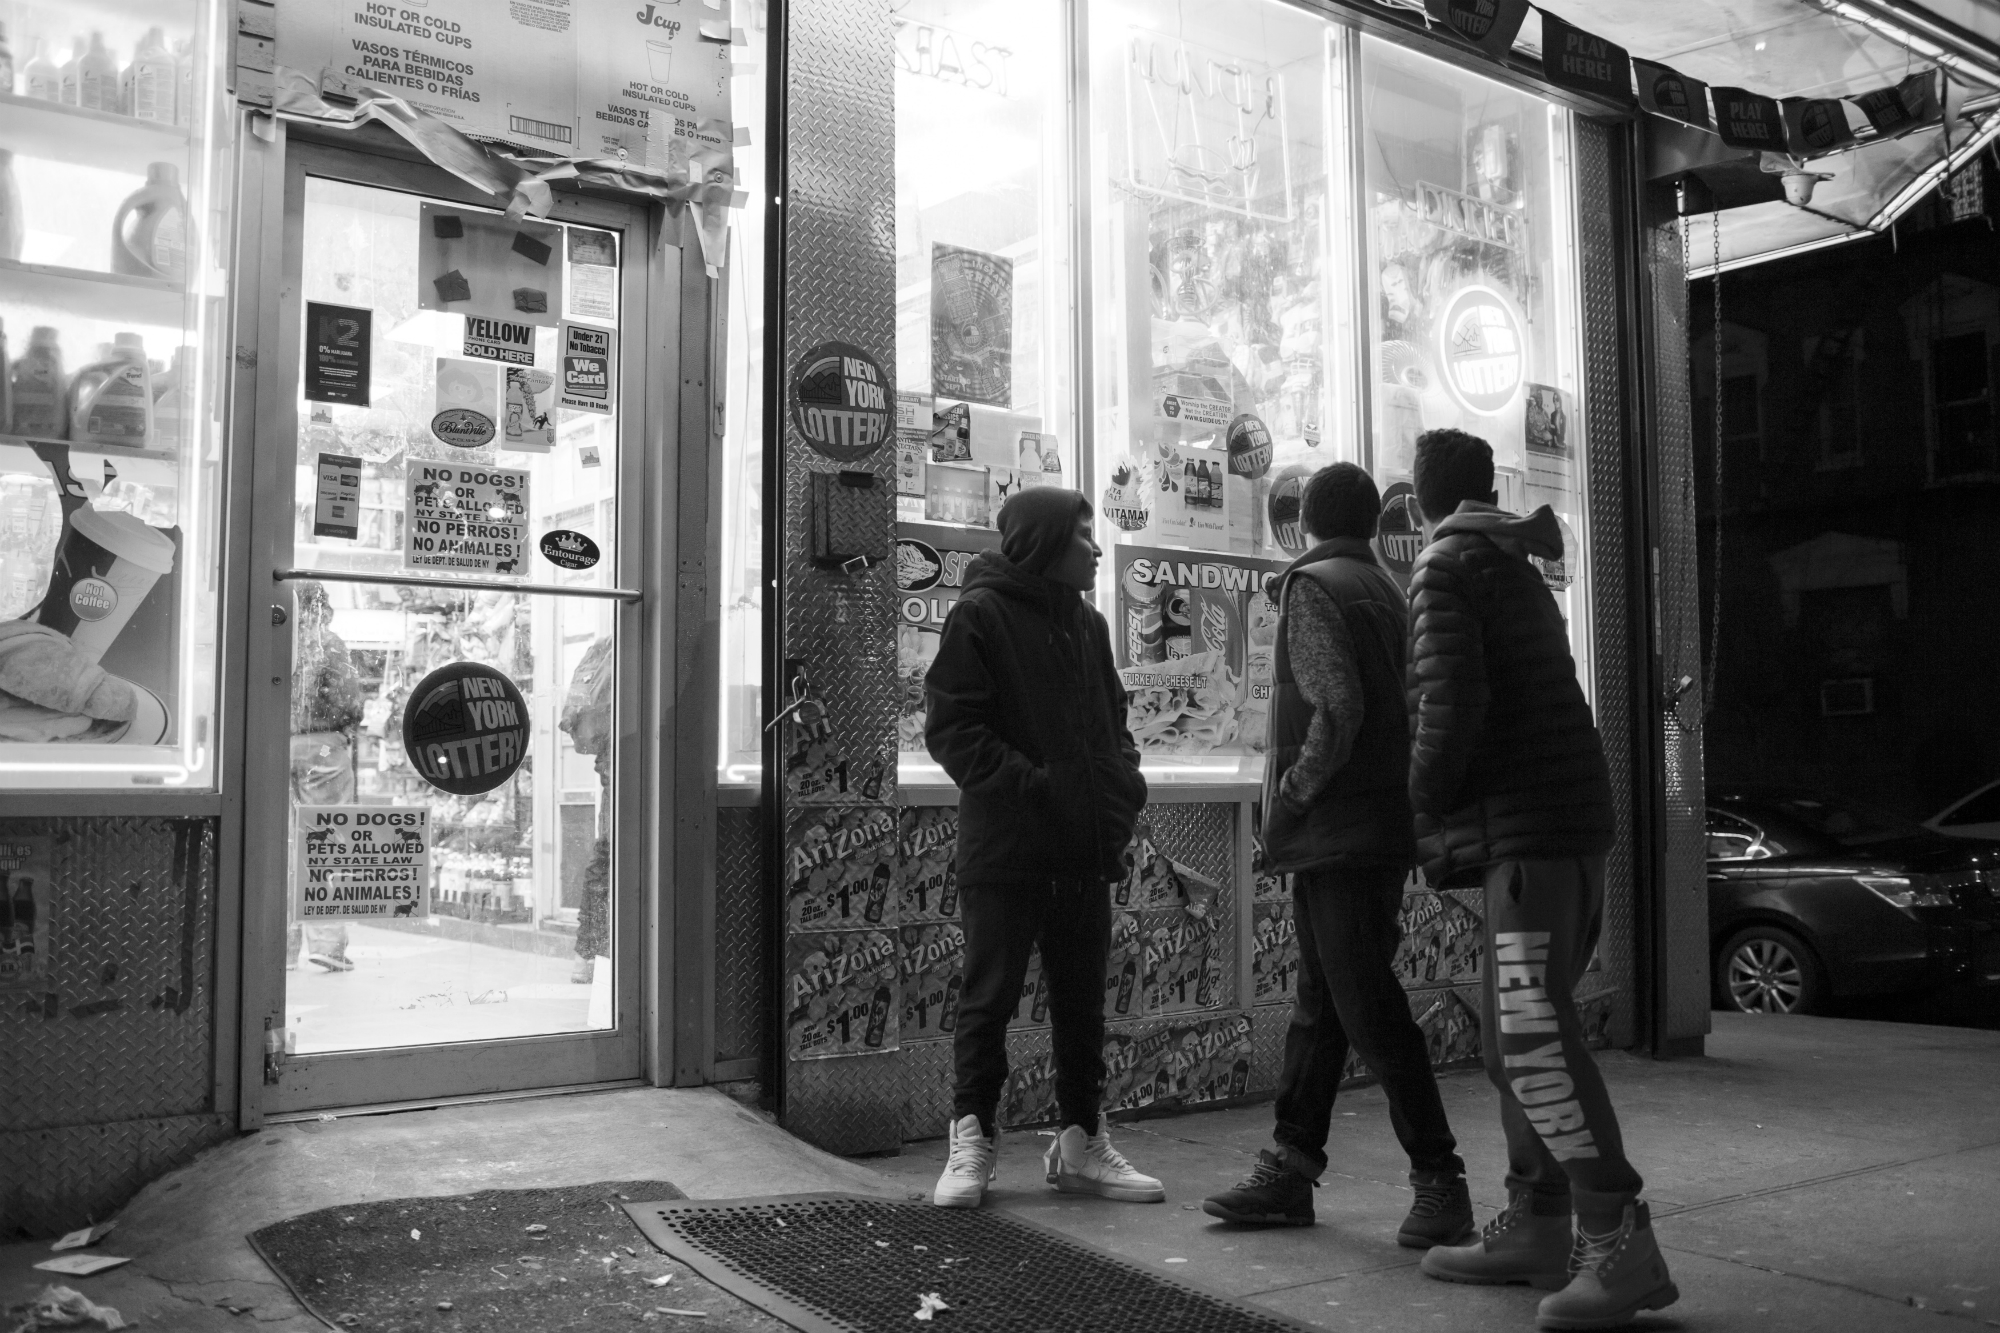 Marco Vasquez, Edwin Amaro, and Chavier Leon watch as a drunk man yells at a woman around the corner. February 26, 2016, Mott Haven, South Bronx, New York City. (Photo by Sarah Blesener/GroundTruth/Alexia Foundation)